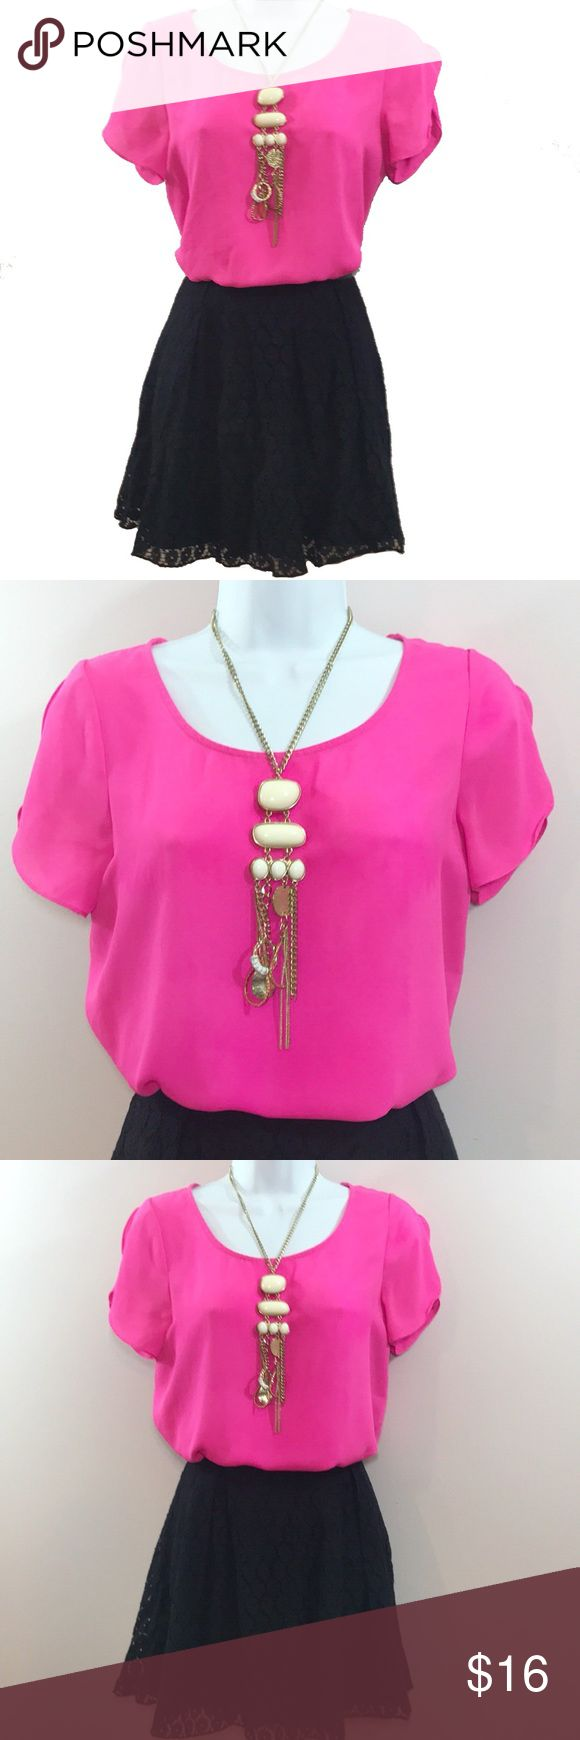 """Hot Pink Short Sleeve Top Hot Pink Short Sleeve Top Size Small Total length is 23.5"""" Across chest measures 34.5"""" Sis Sis Tops Blouses"""